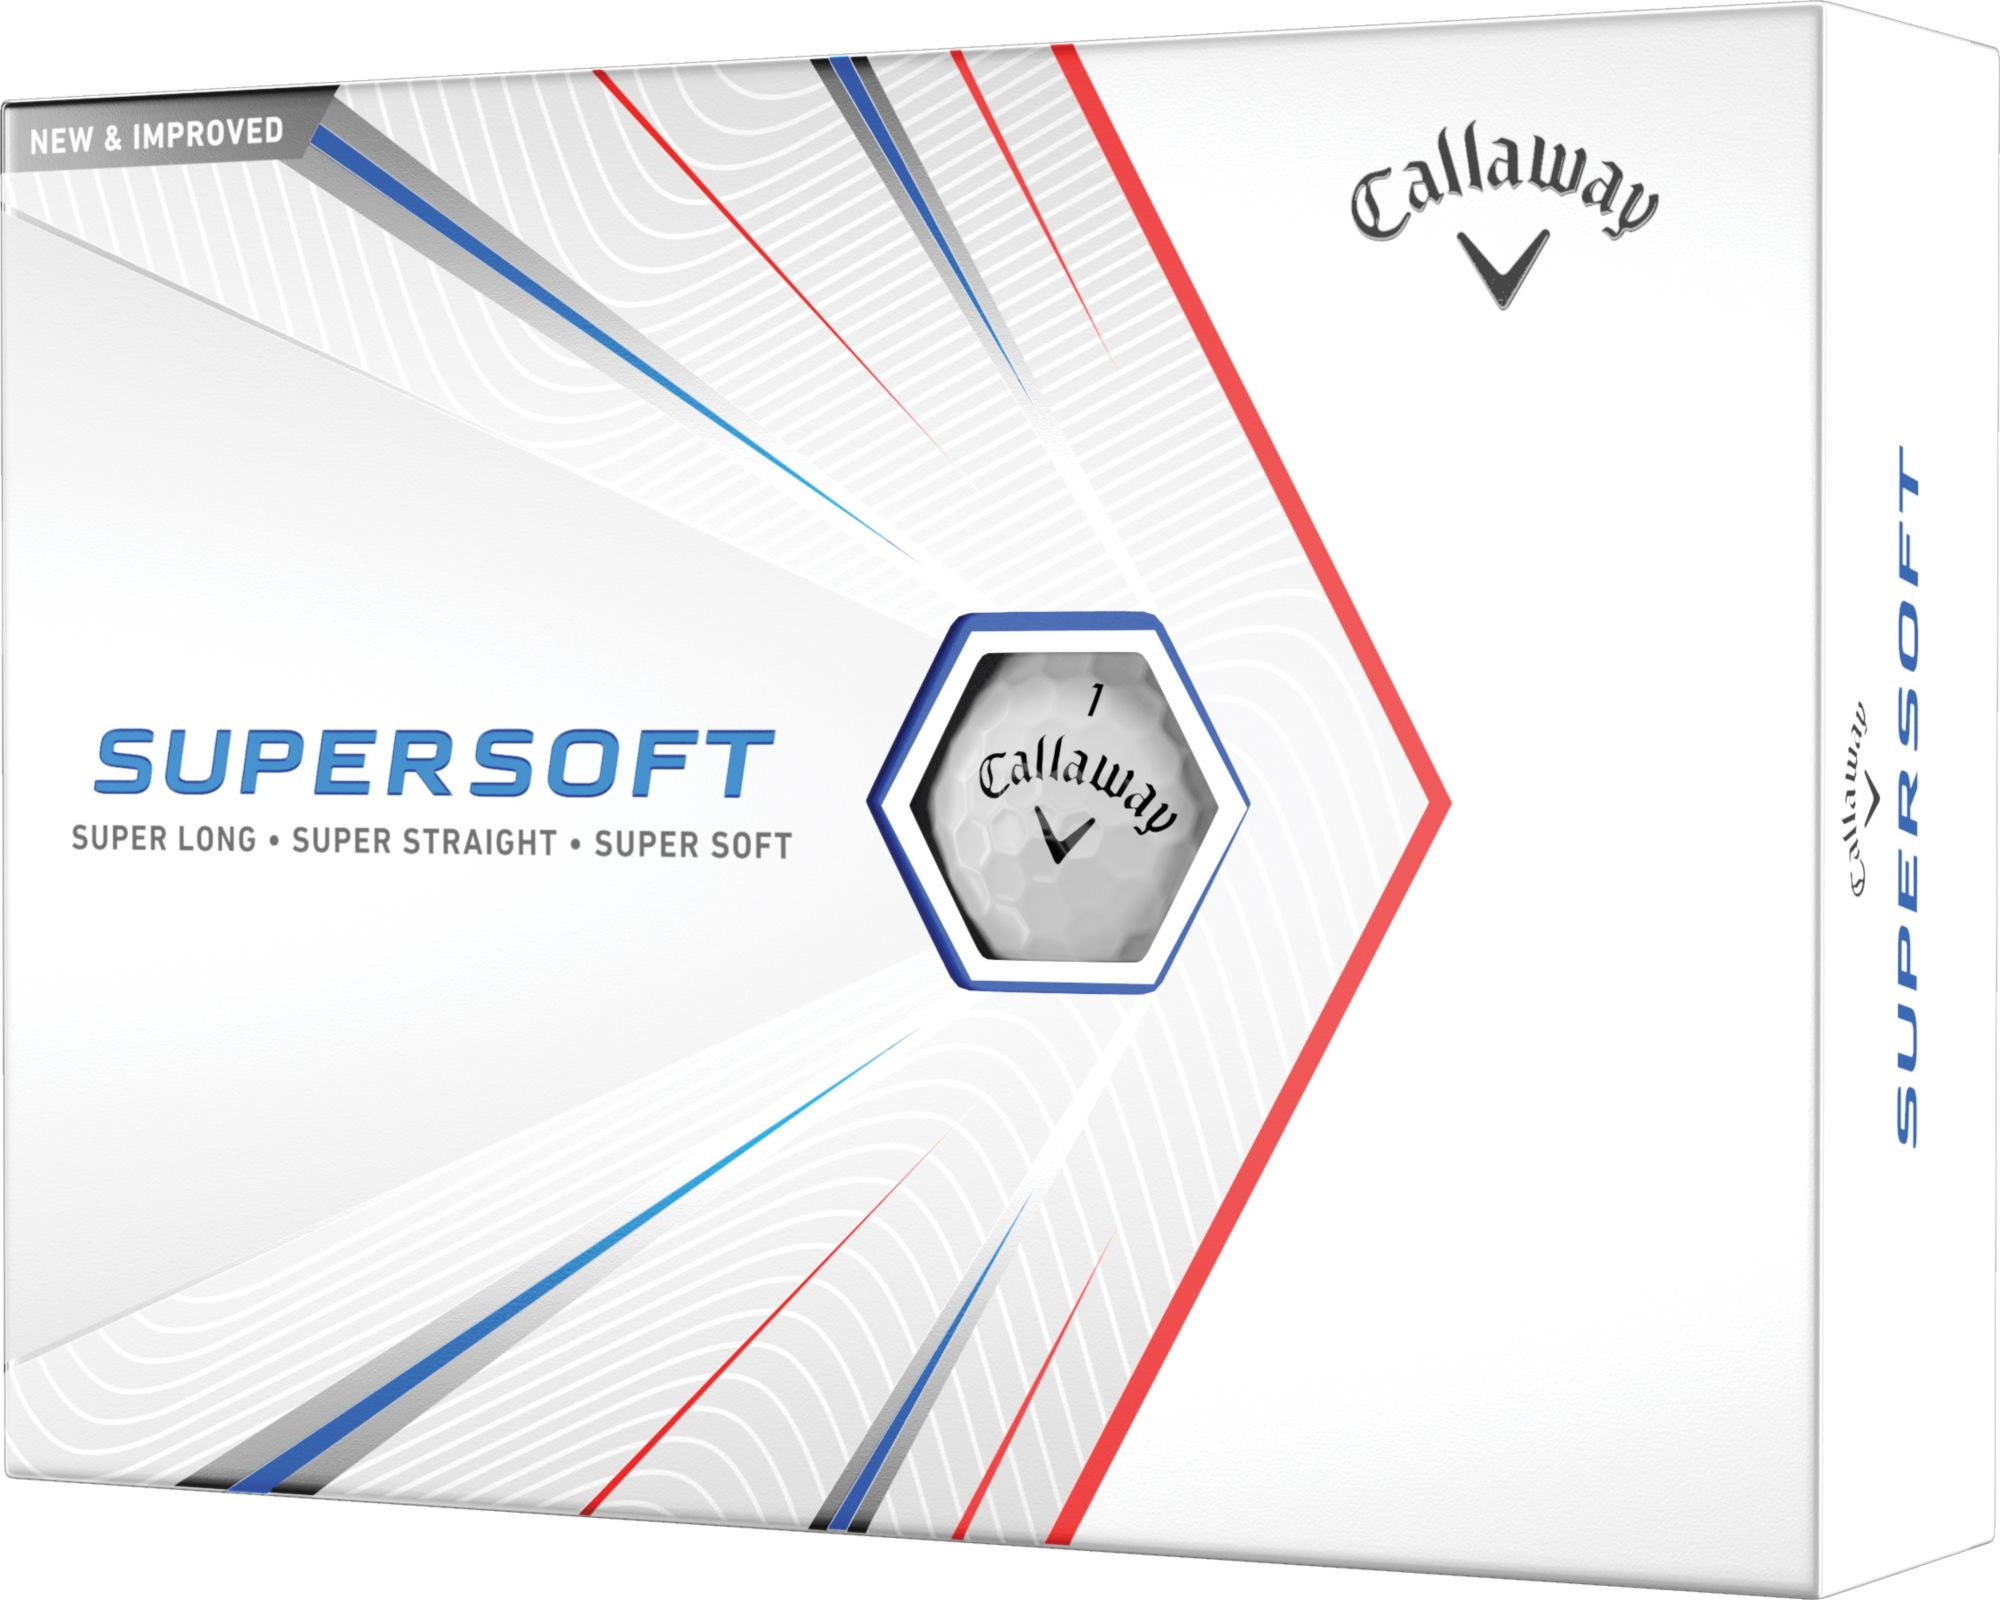 Supersoft & Supersoft Max